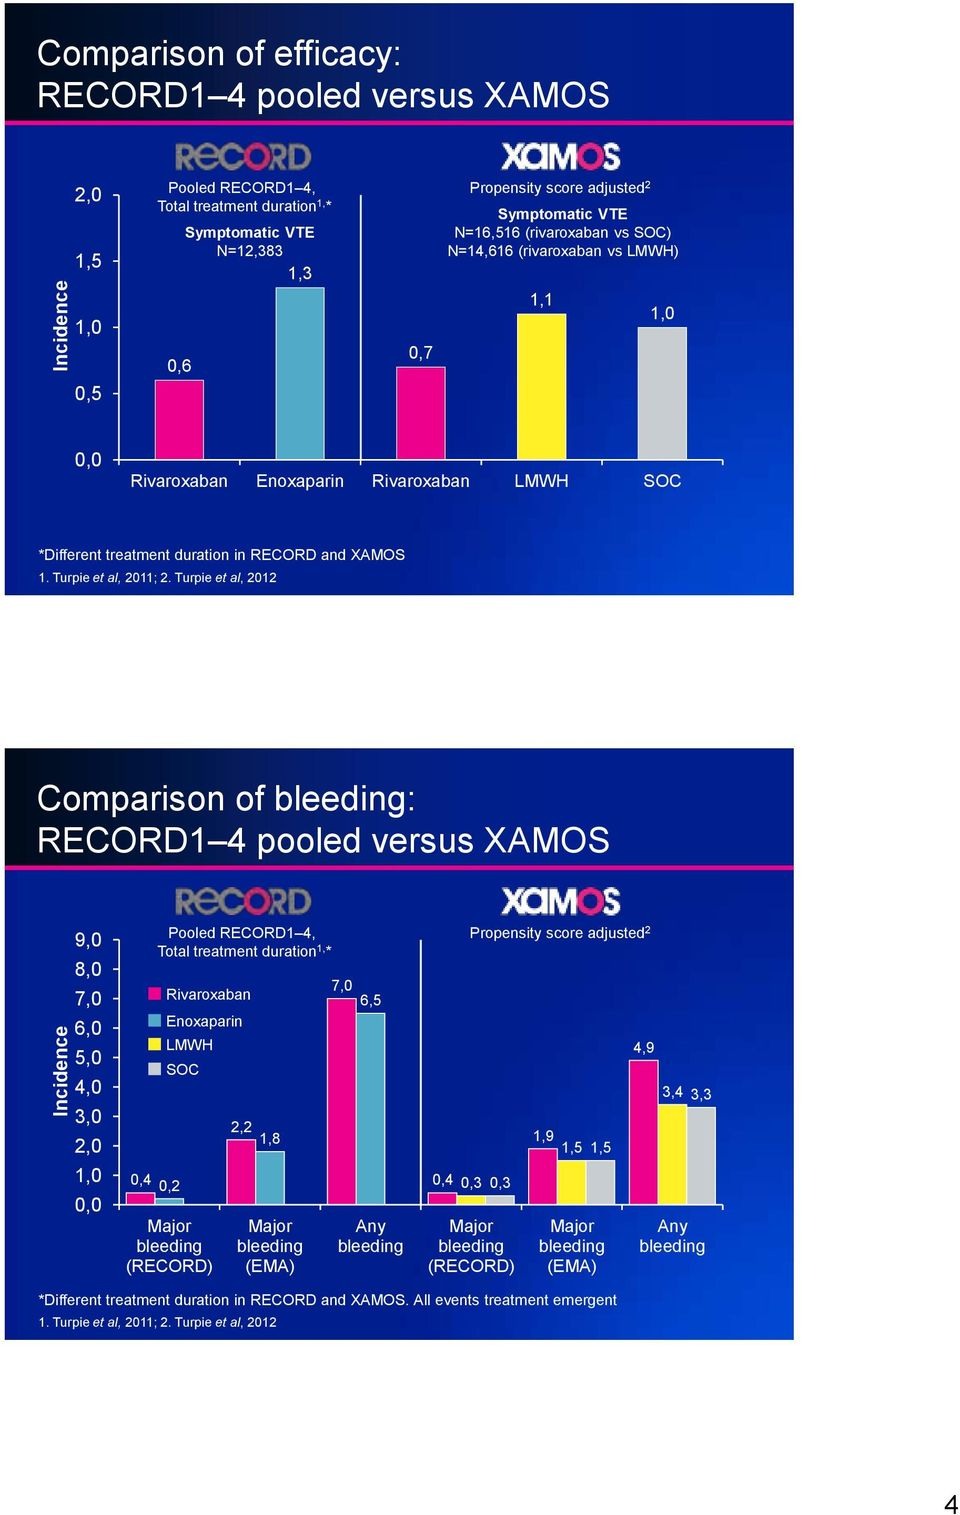 Turpie et al, 2012 Comparison of bleeding: RECORD1 4 pooled versus XAMOS 9,0 8,0 7,0 6,0 5,0 4,0 3,0 2,0 1,0 0,0 Pooled RECORD1 4, Total treatment duration 1, * 0,4 0,2 Enoxaparin LMWH SOC Major